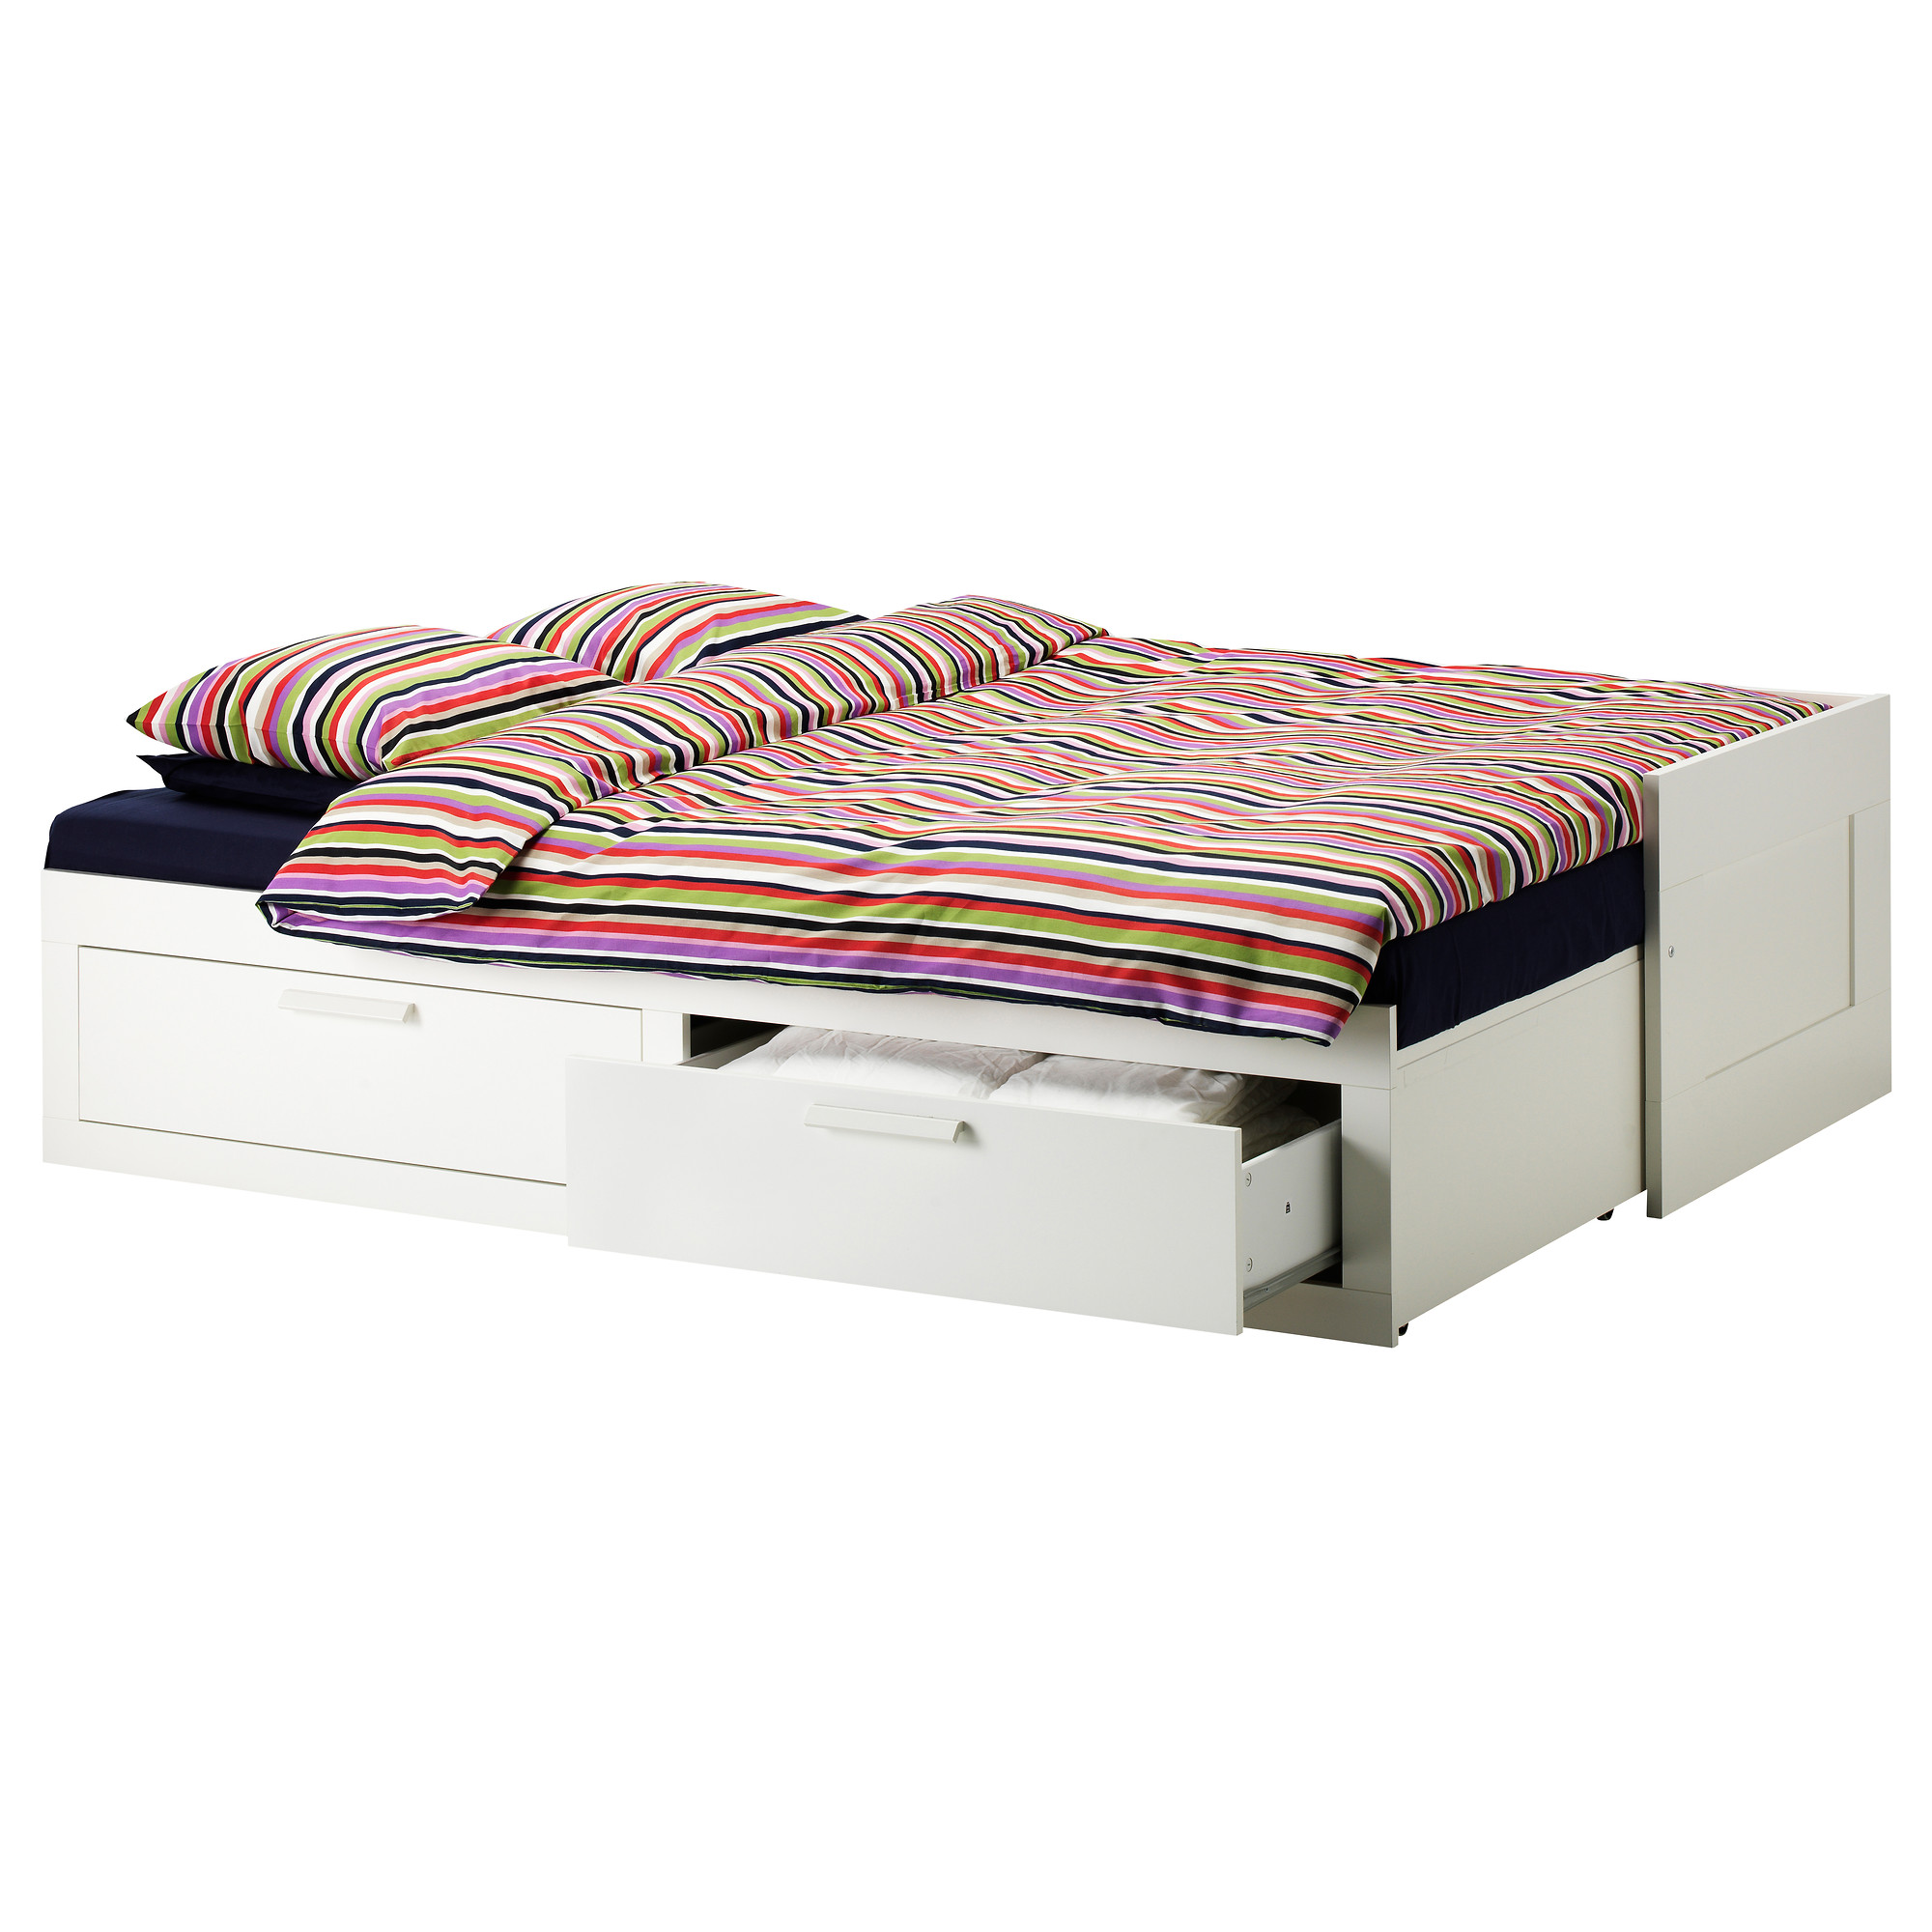 twin bed frames with storage place drawers stylish bedcover and pillows